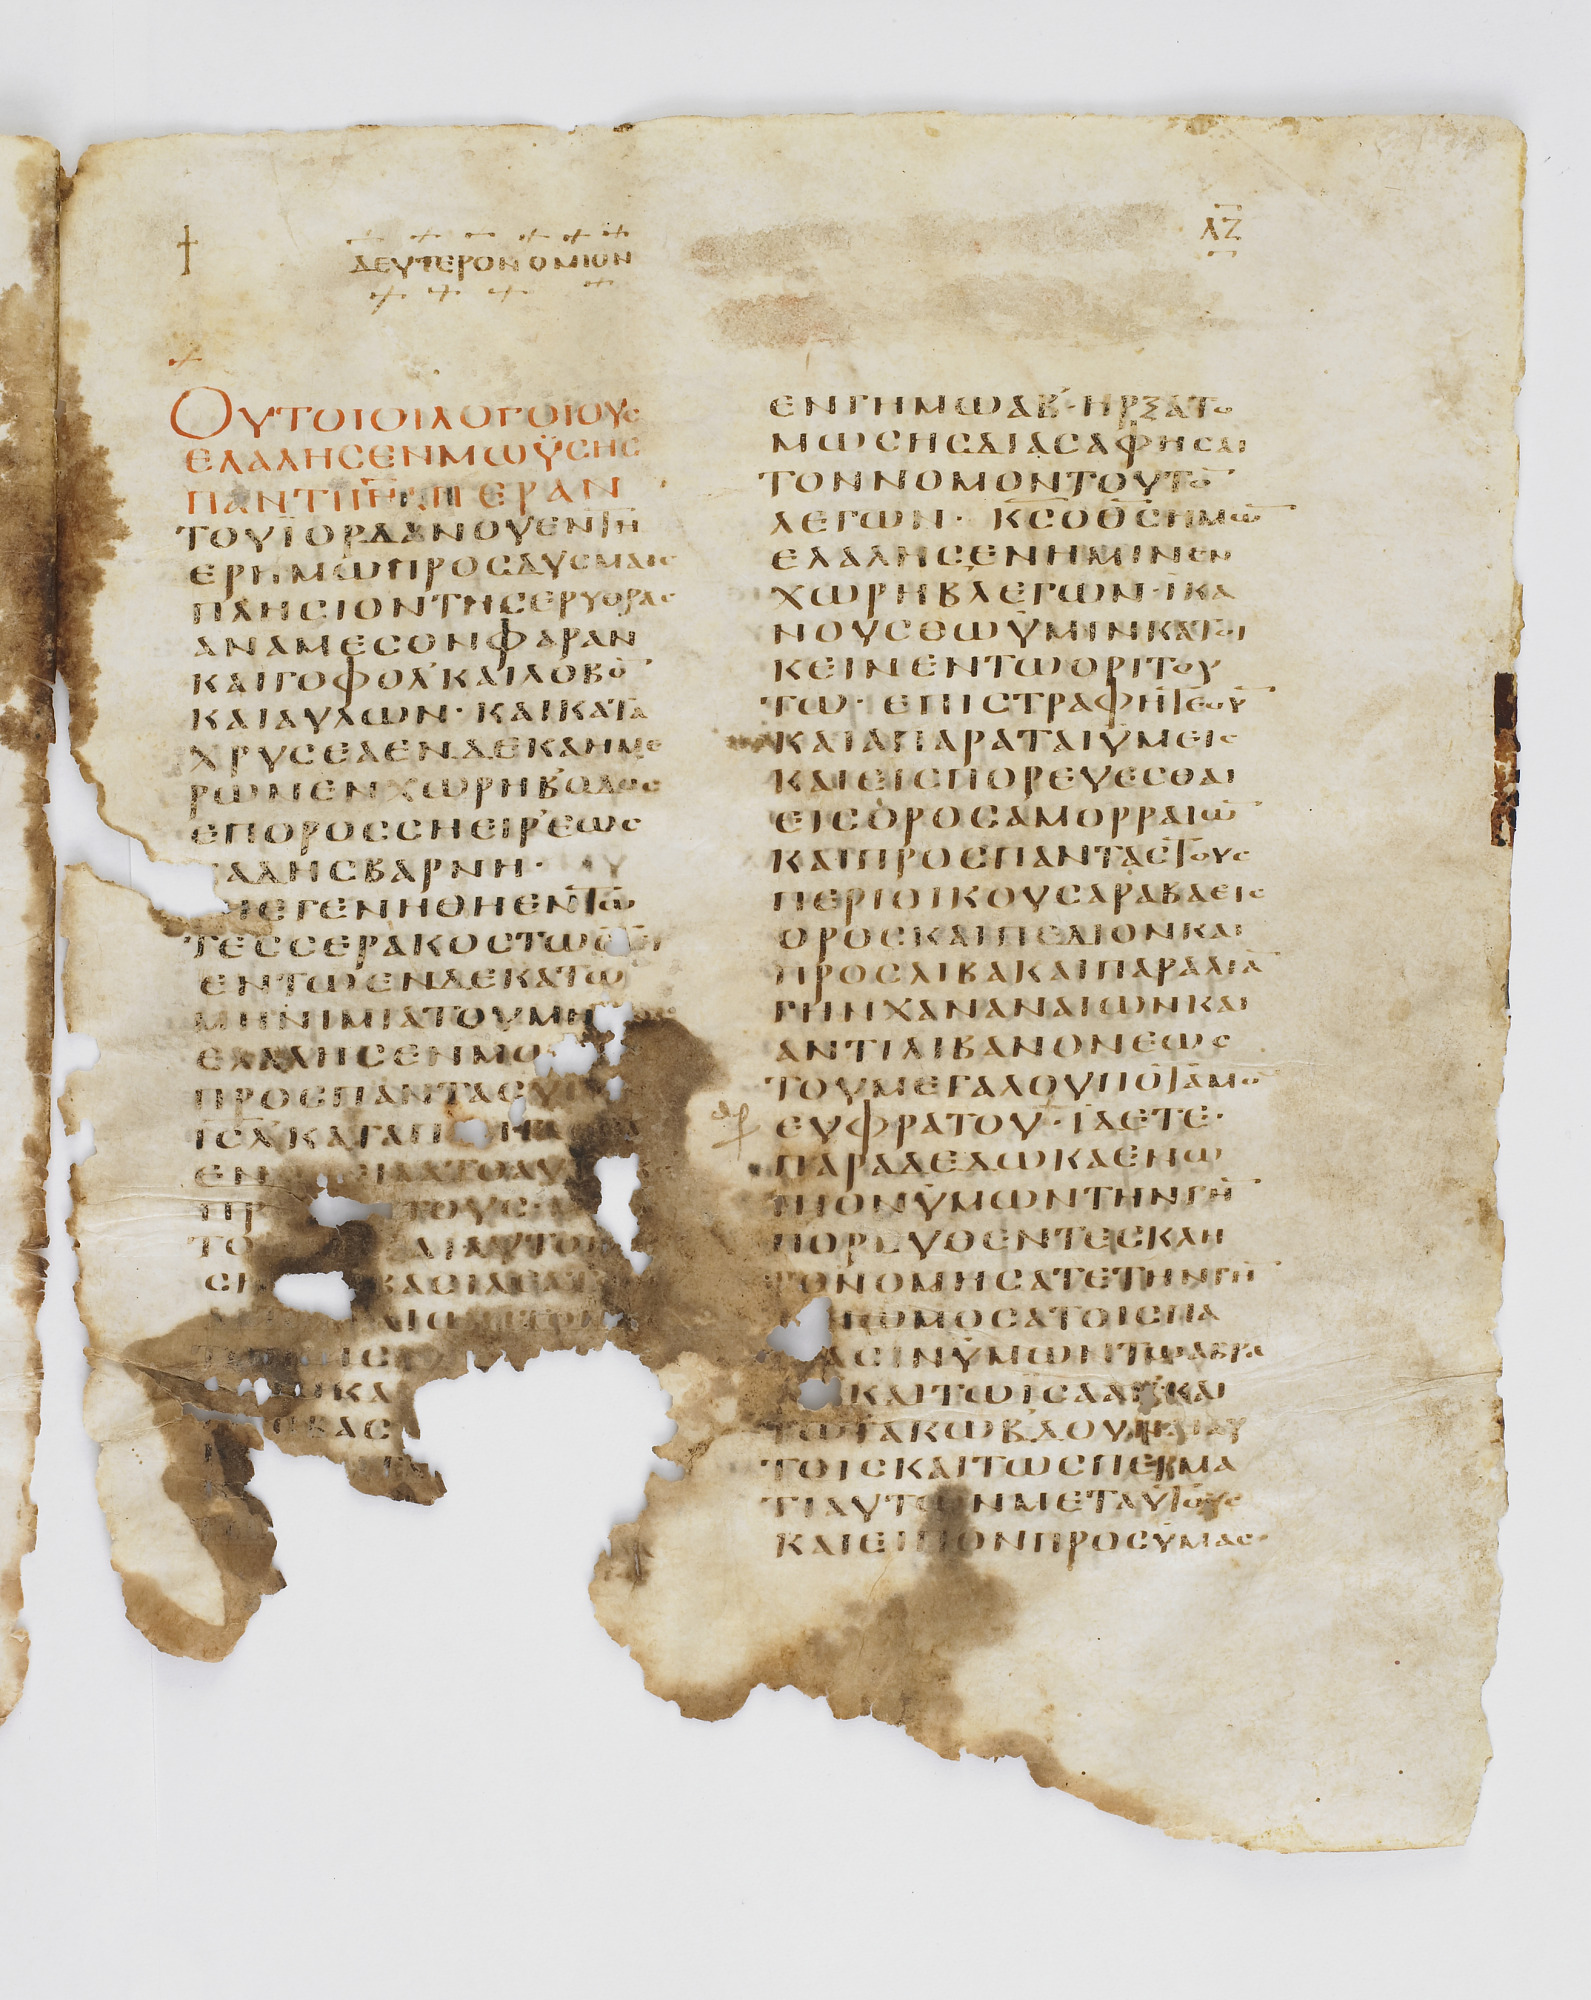 1: Washington Manuscript I - Deuteronomy and Joshua (Codex Washingtonensis)